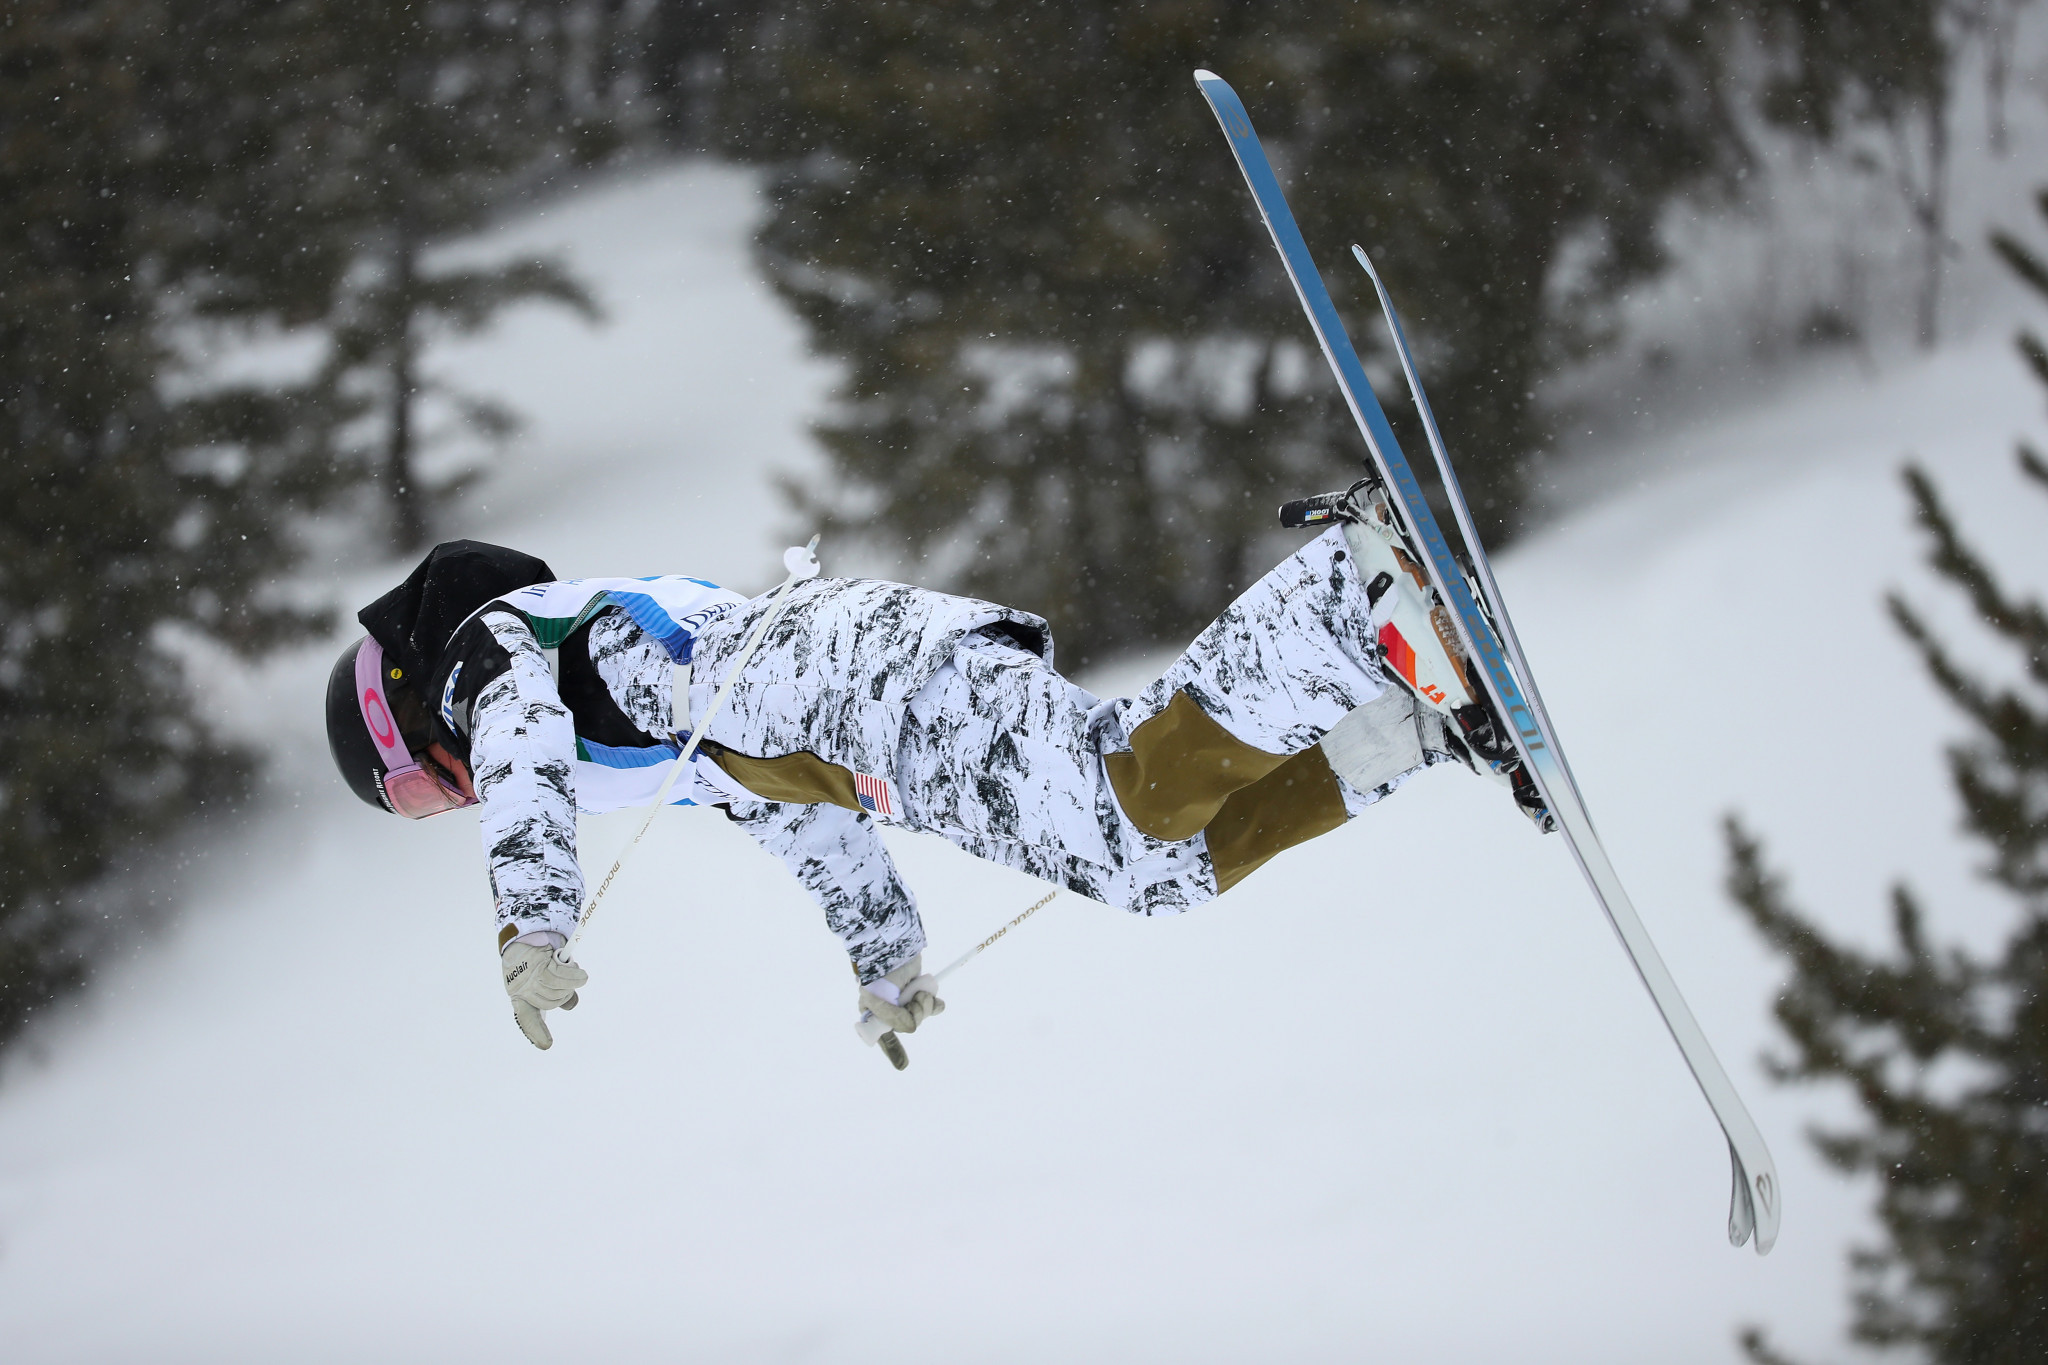 Jaelin Kauf spearheads the moguls team for the upcoming season ©Getty Images